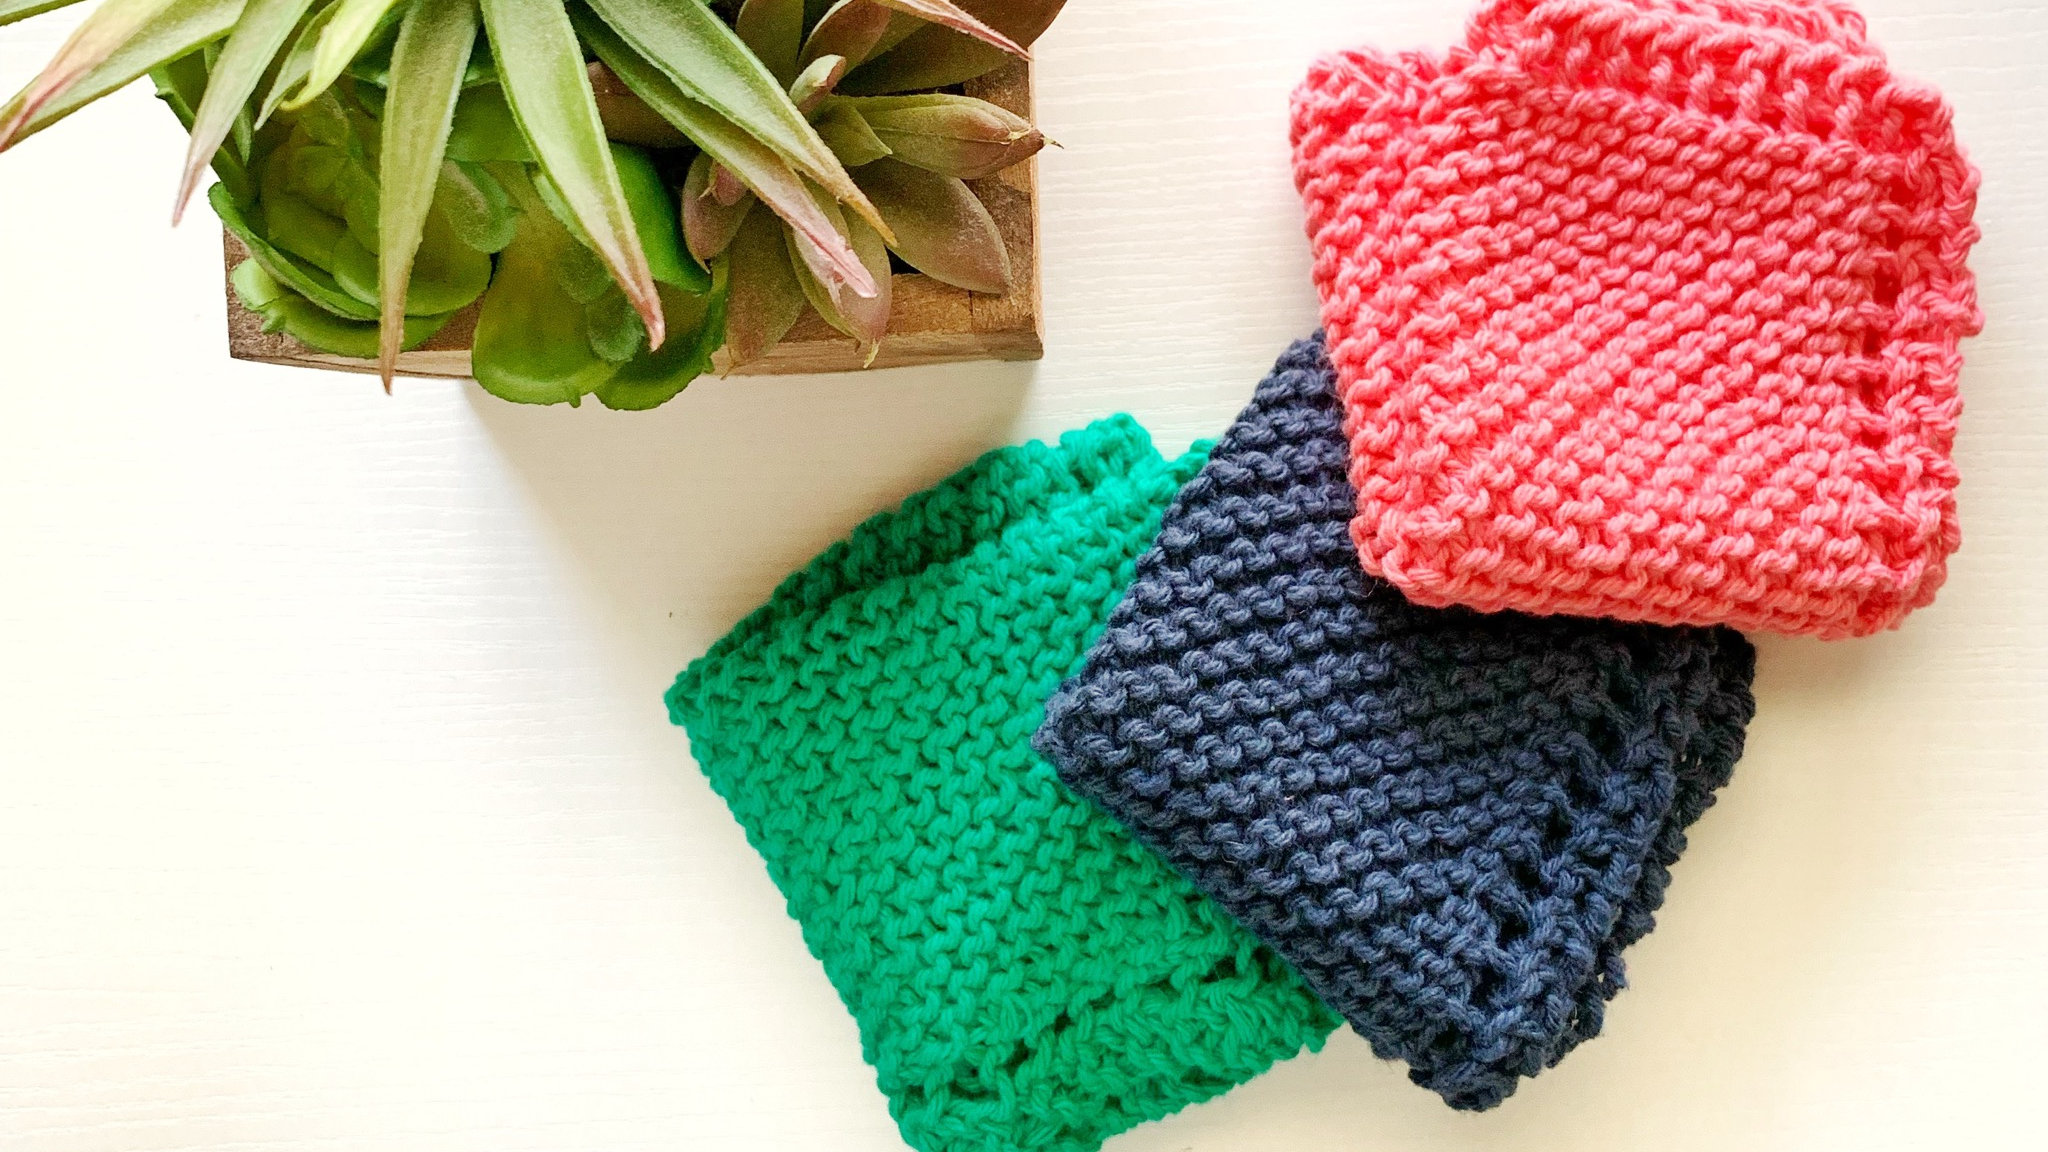 The Three Best Yarns For Knitting and Crocheting Dishcloths